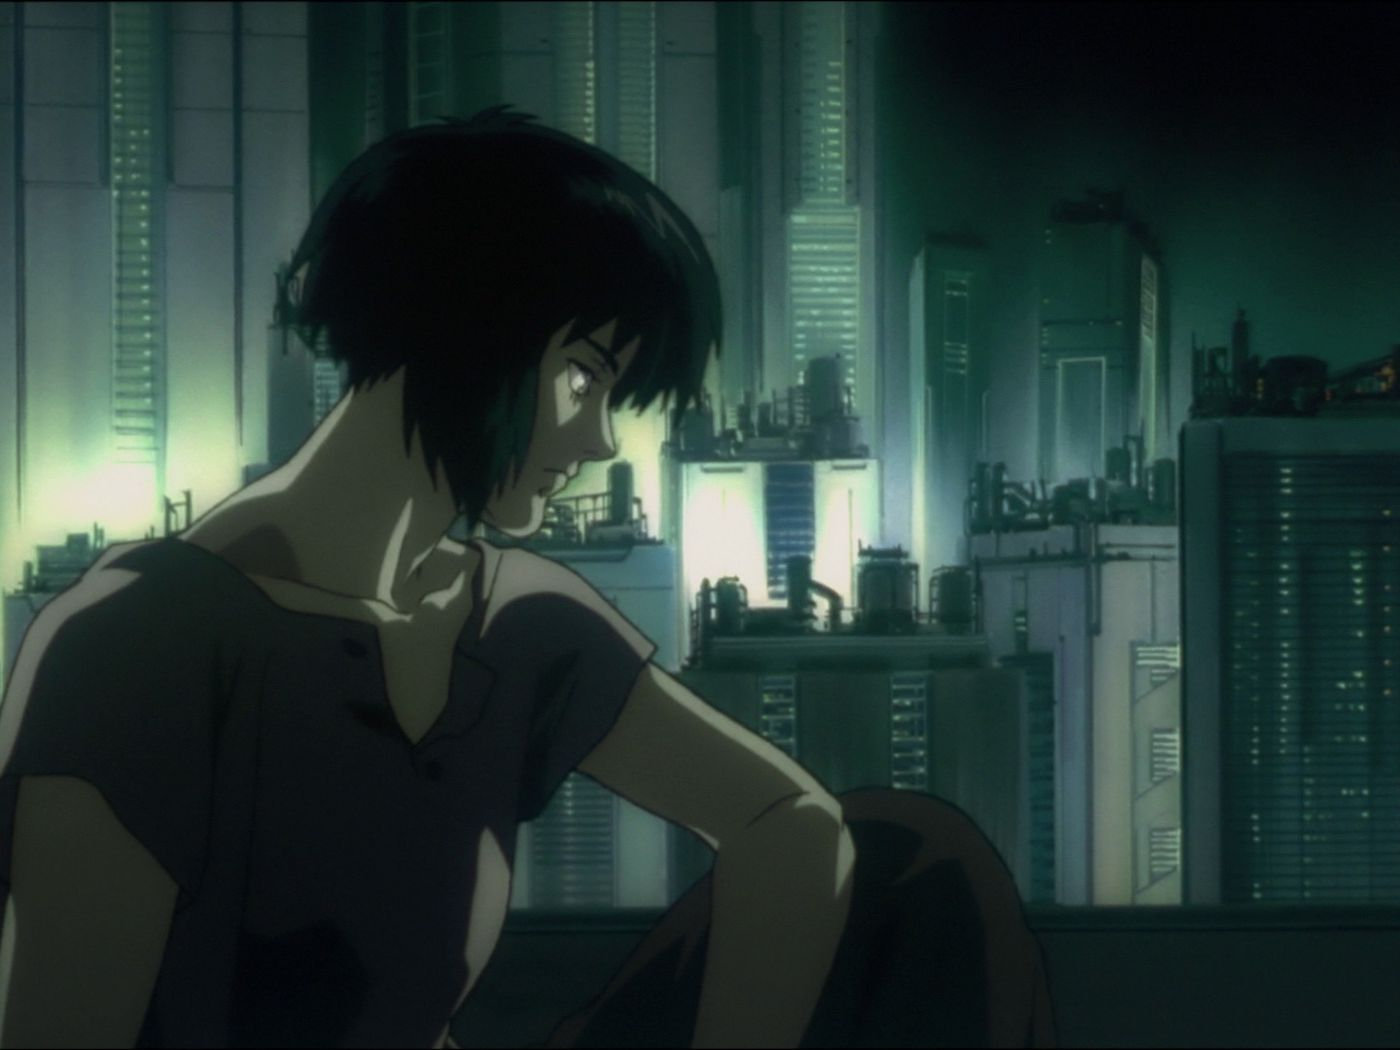 The Original Ghost In The Shell Is Iconic Anime And A Rich Philosophical Text Vox